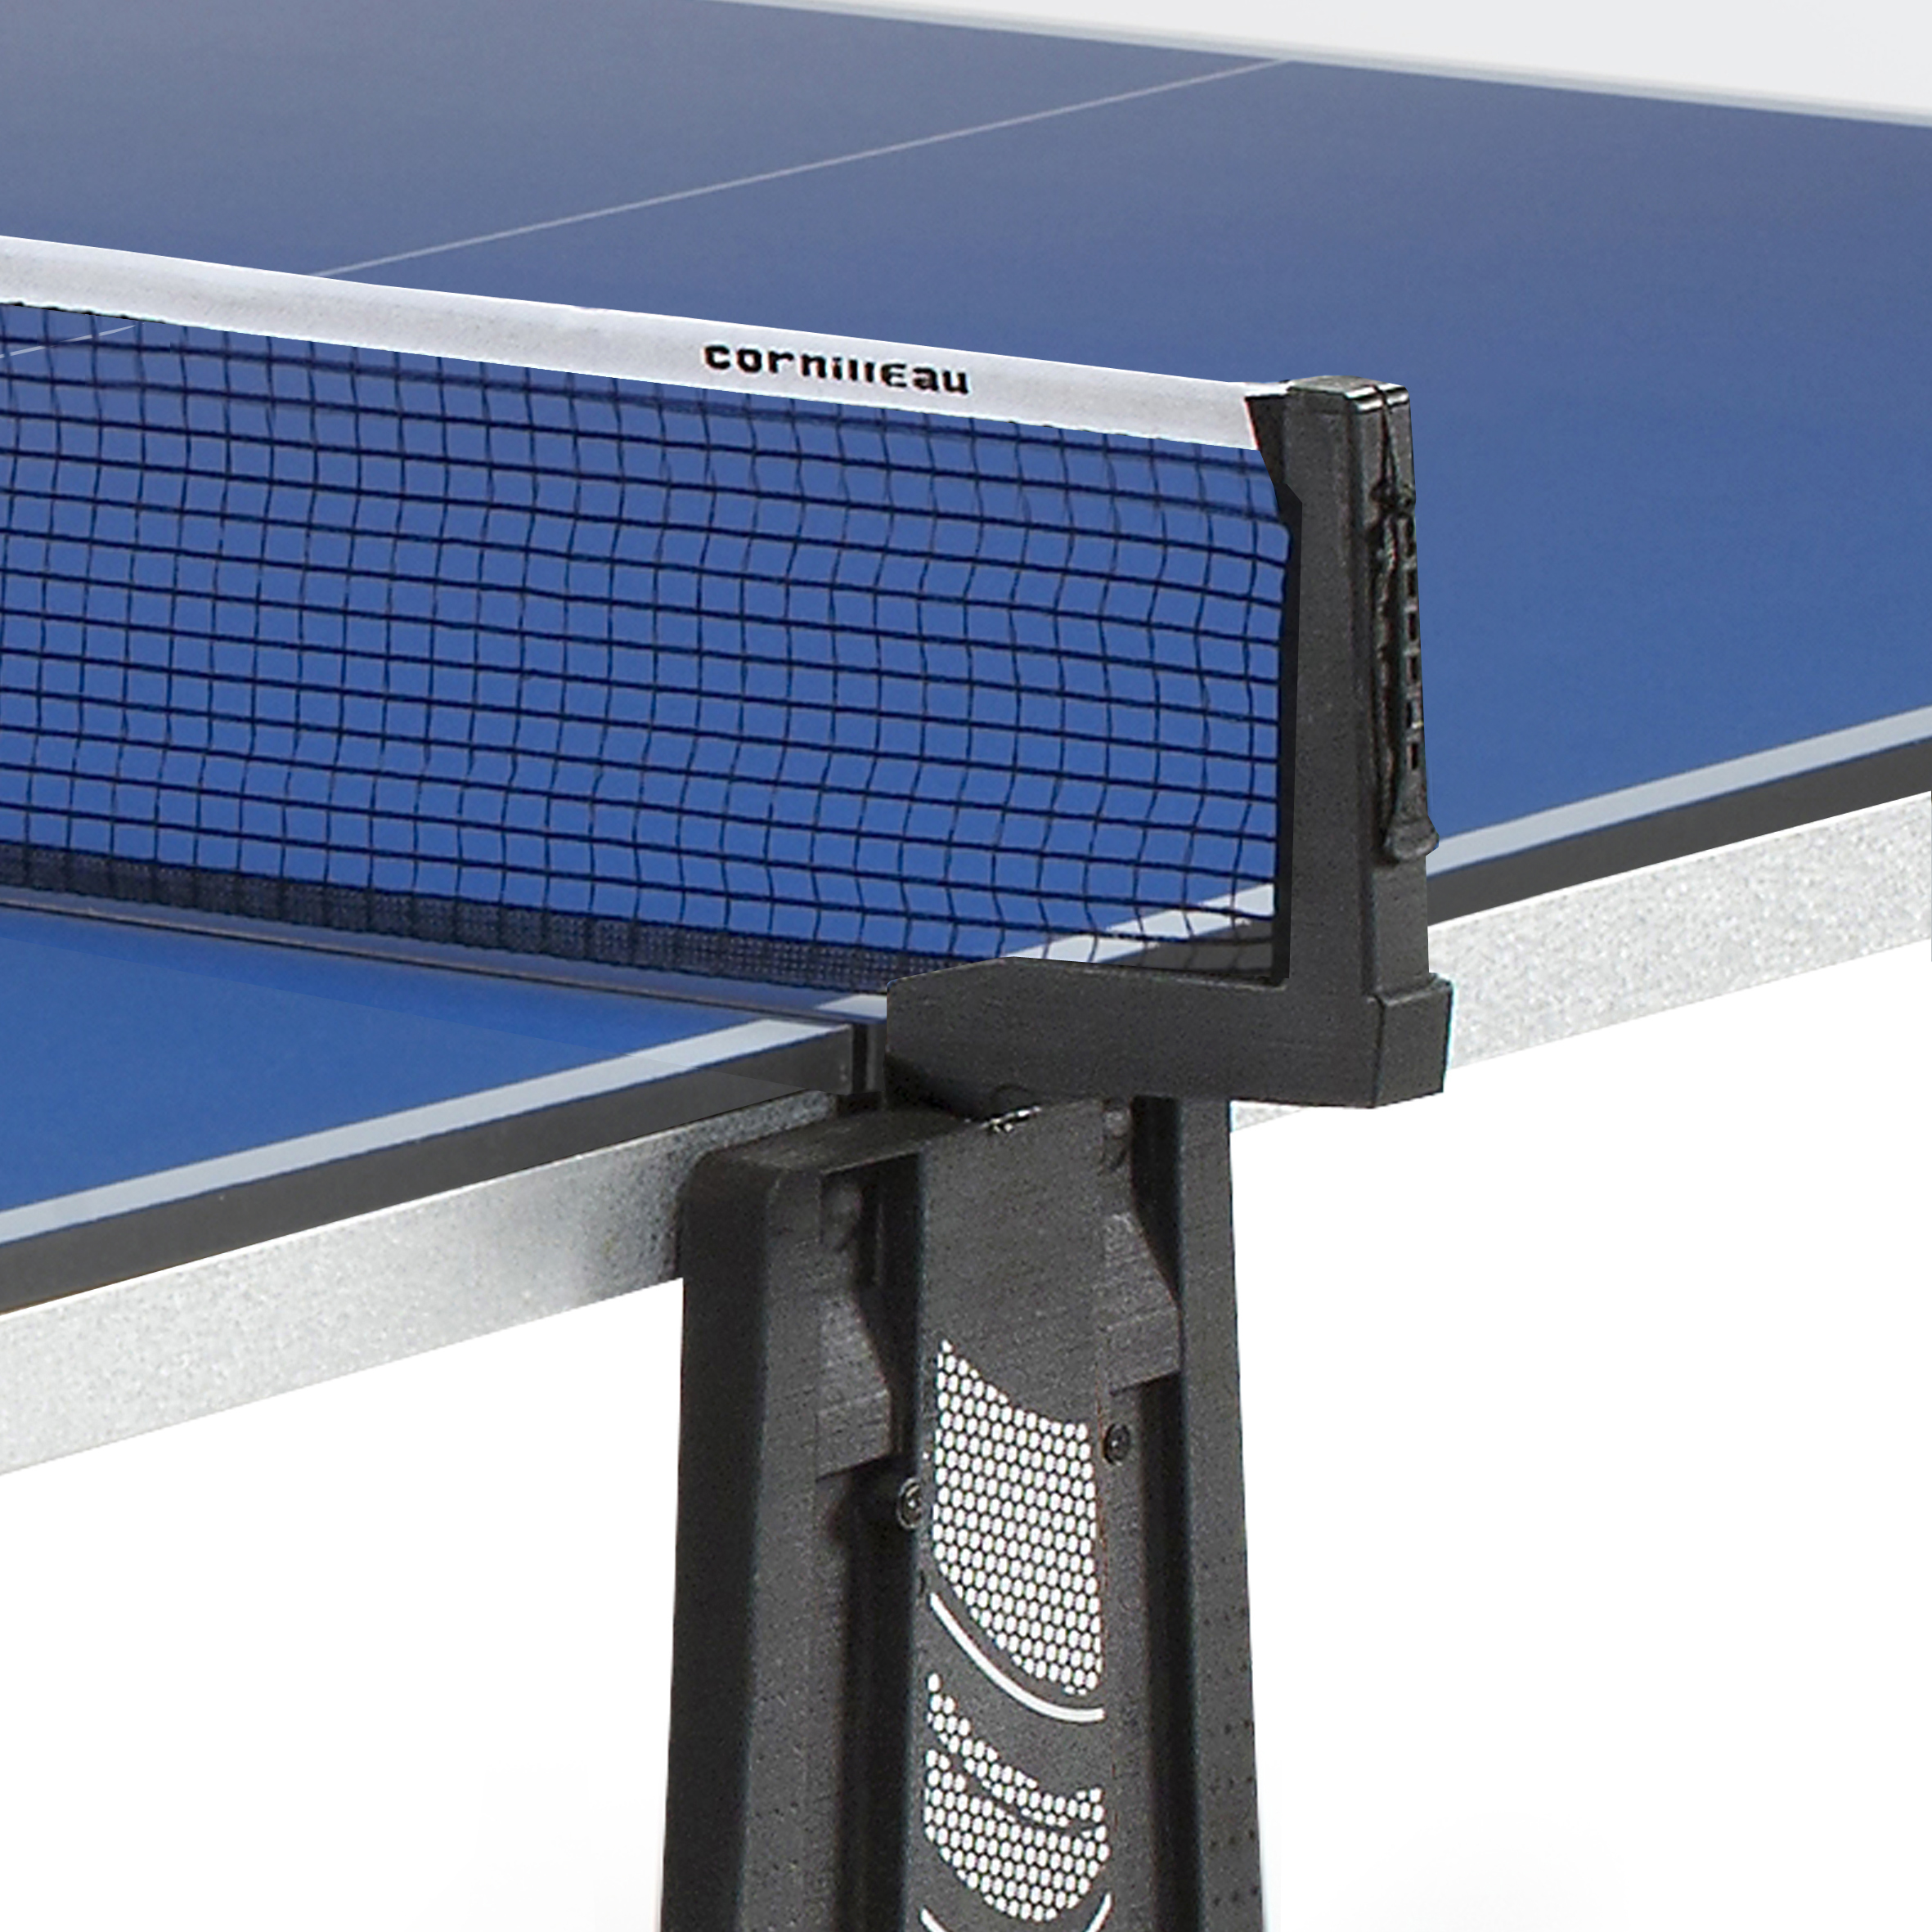 Cornilleau 250 Indoor Ping Pong Table